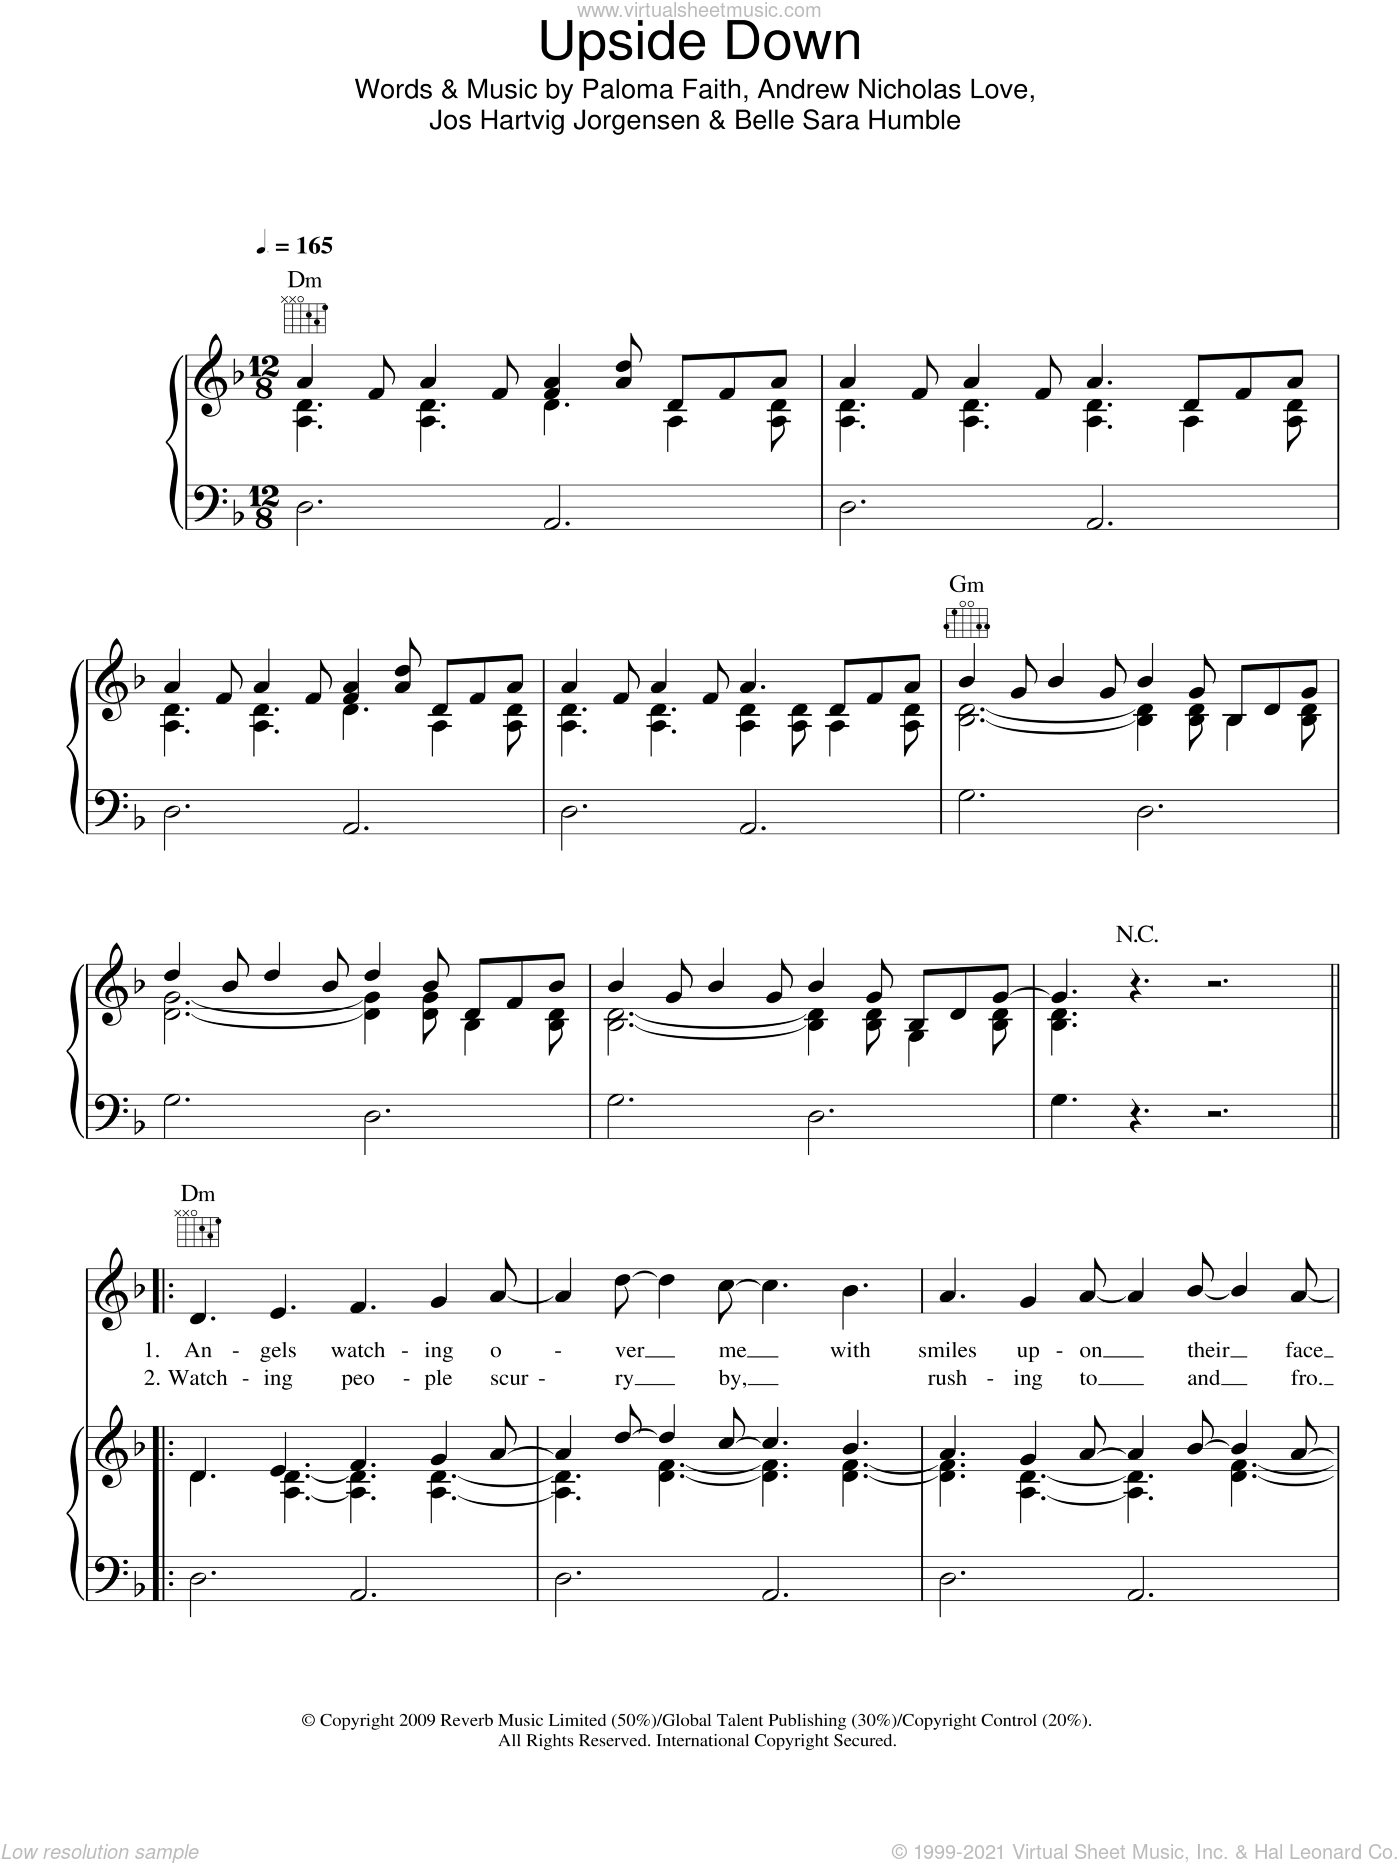 Upside Down sheet music for voice, piano or guitar by Paloma Faith, Andrew Nicholas Love, Belle Sara Humble and Jos Hartvig Jorgensen, intermediate skill level